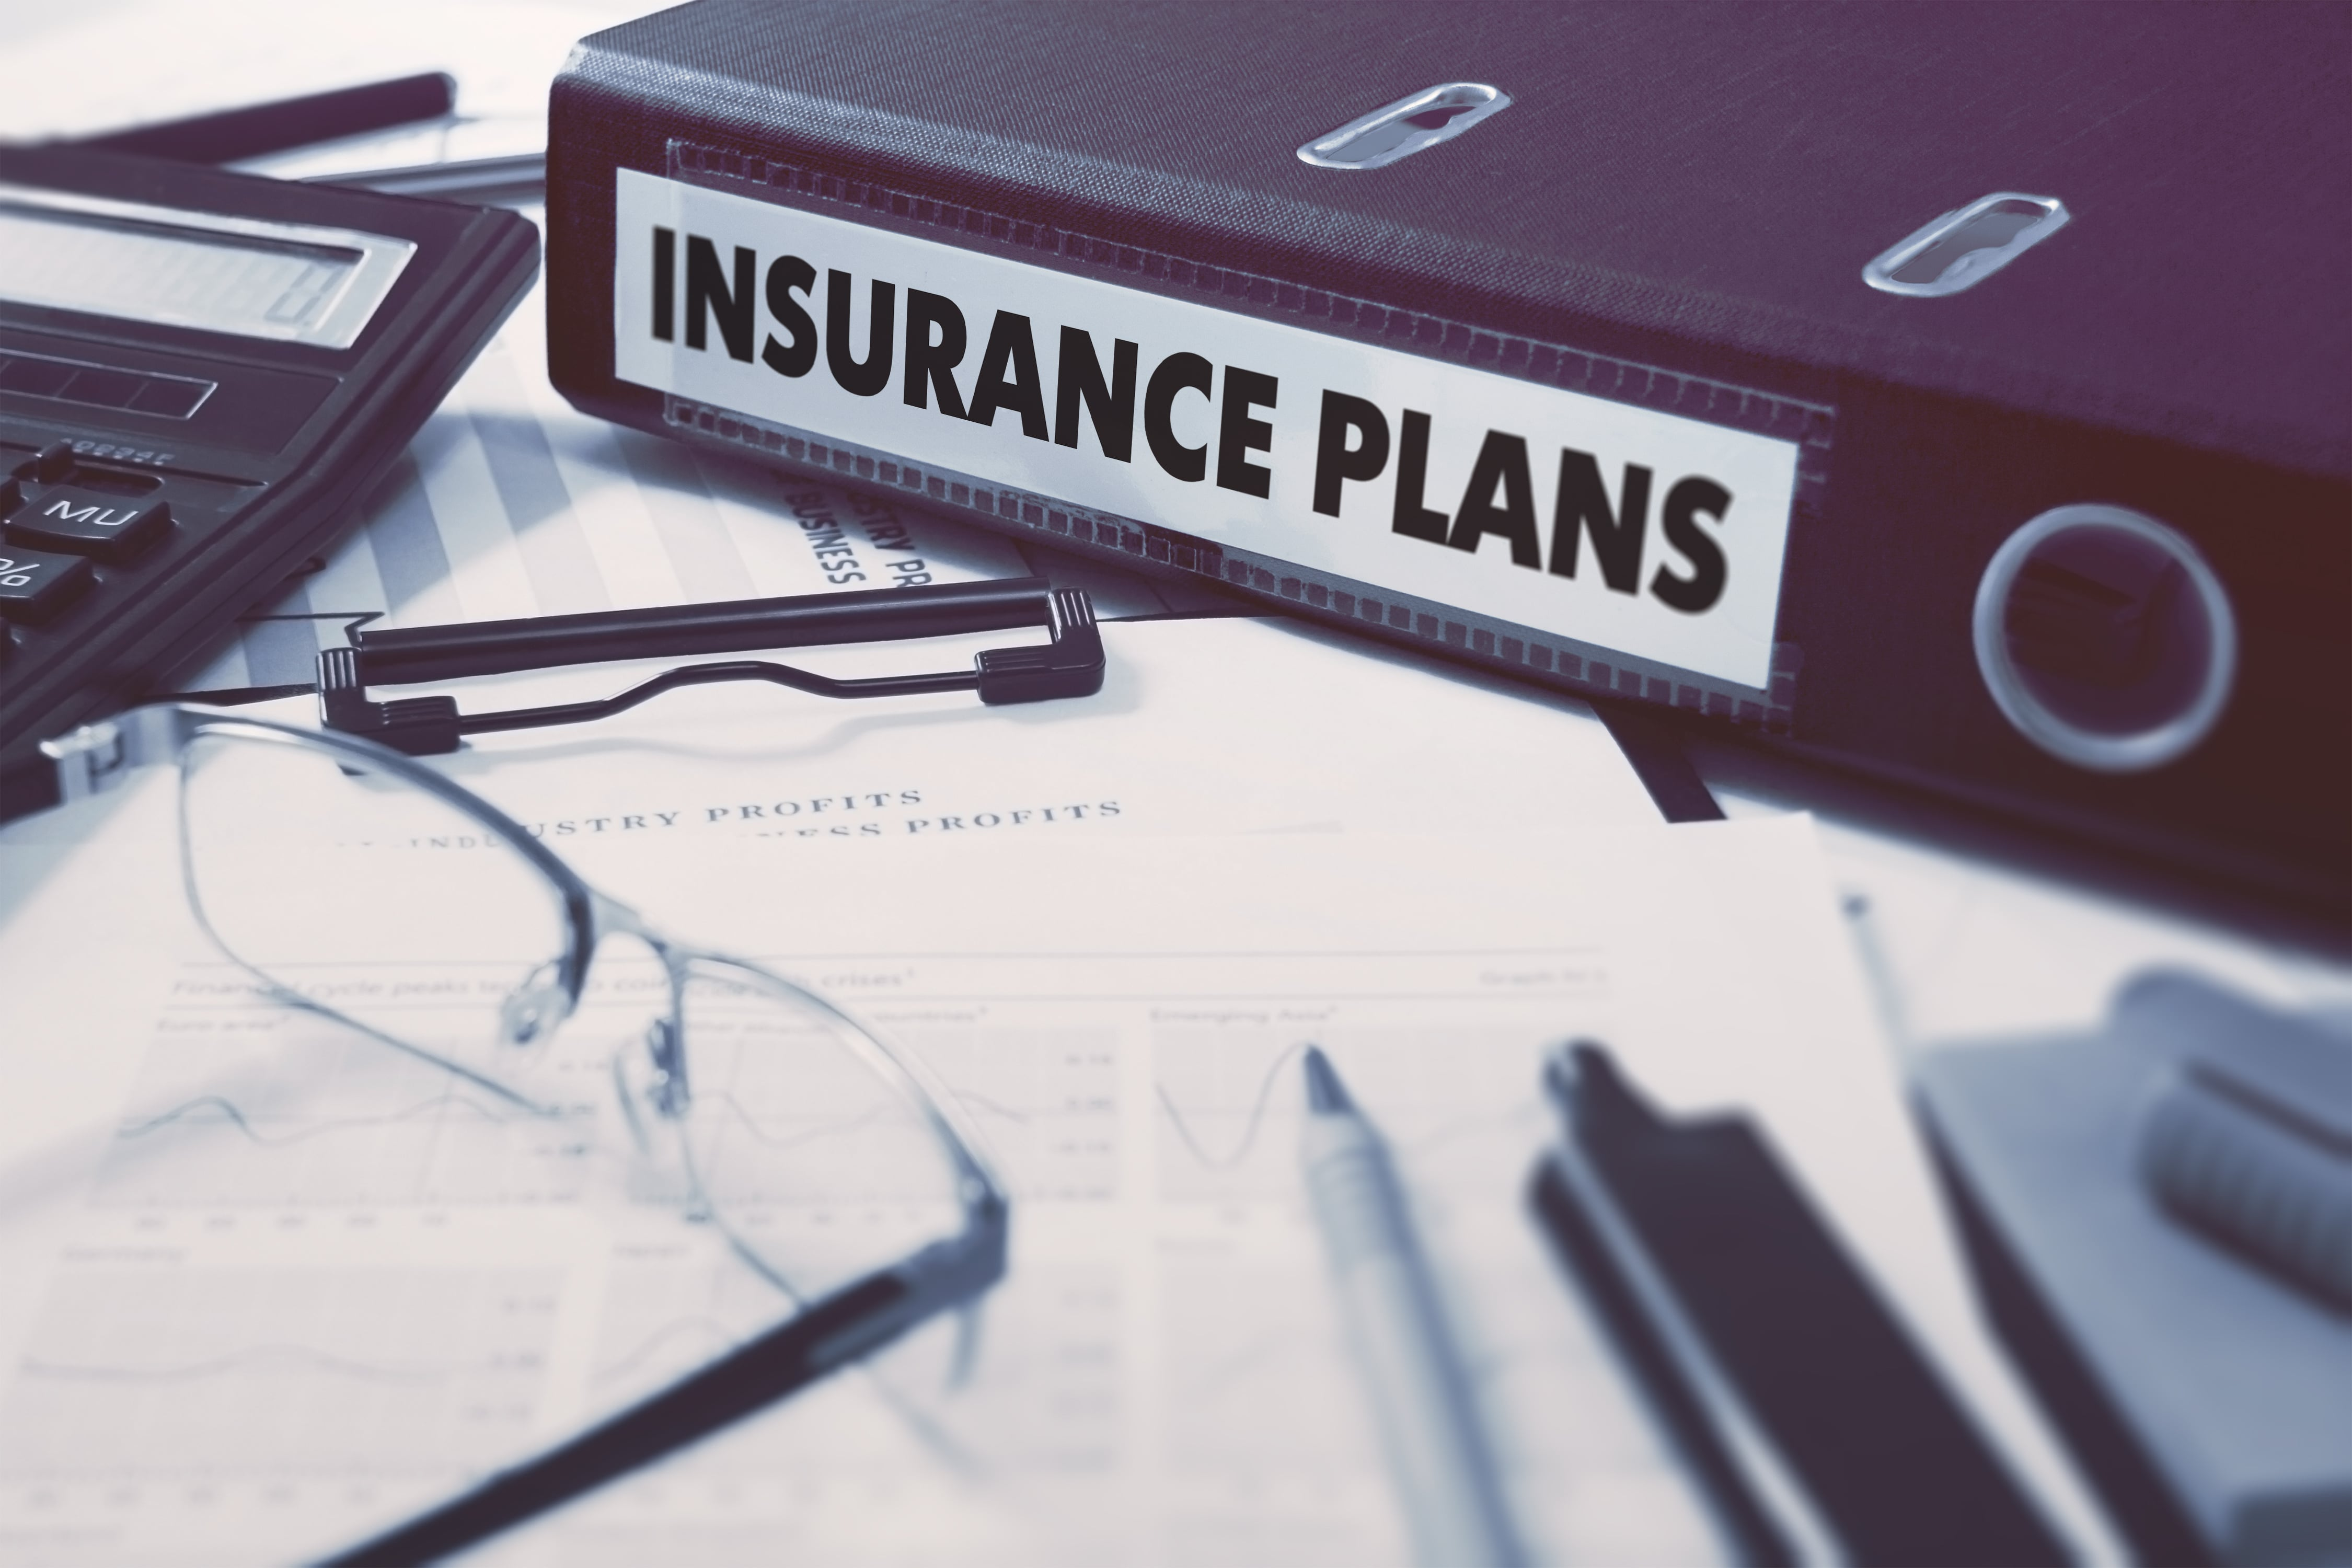 insurance-plans-ring-binder-on-office-desktop-with-office-supplies-business-concept-on-blurred-backg